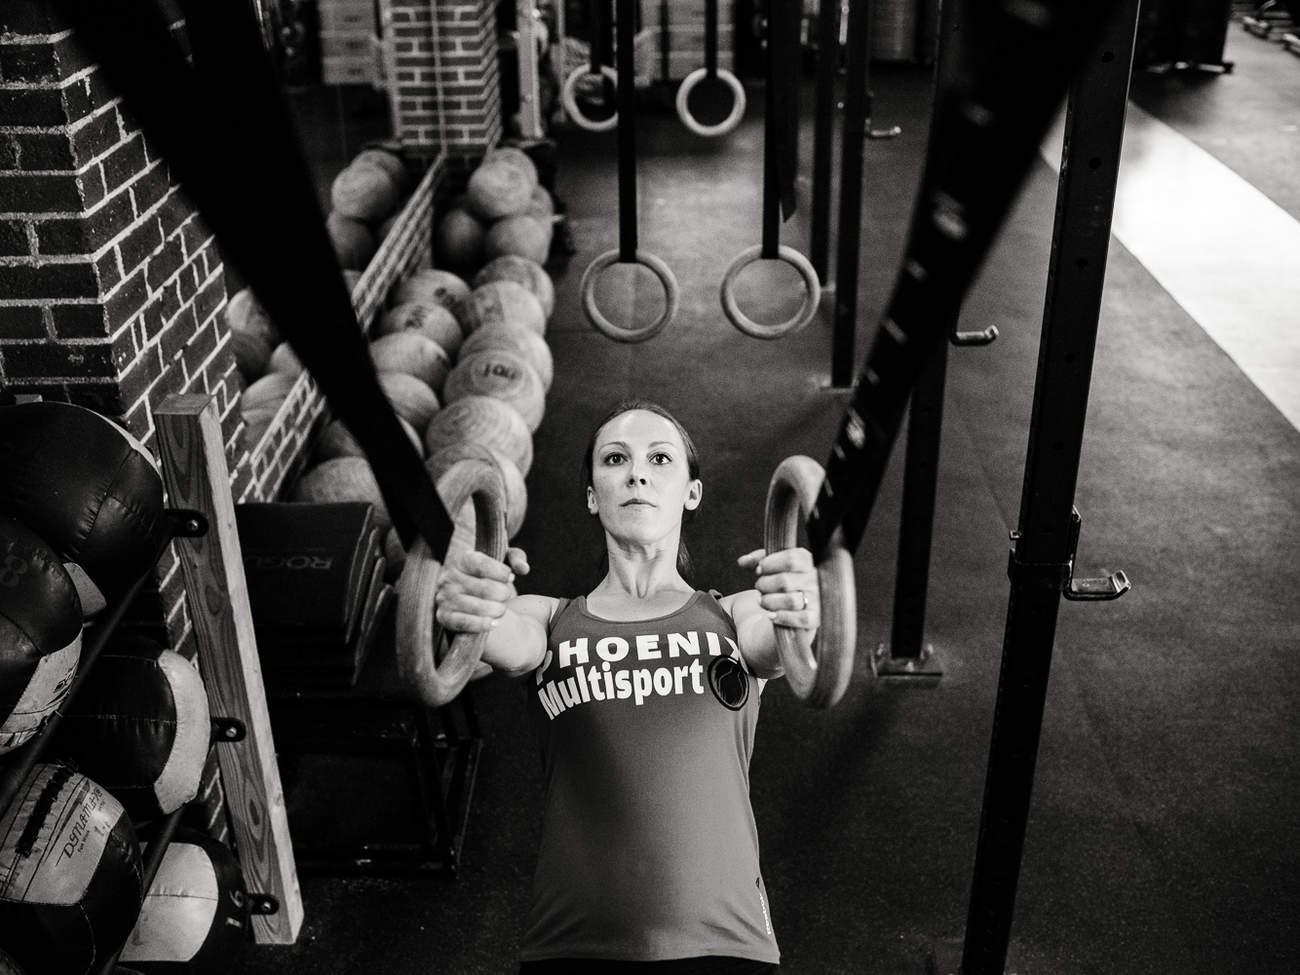 dana-smith-working-out-save-life